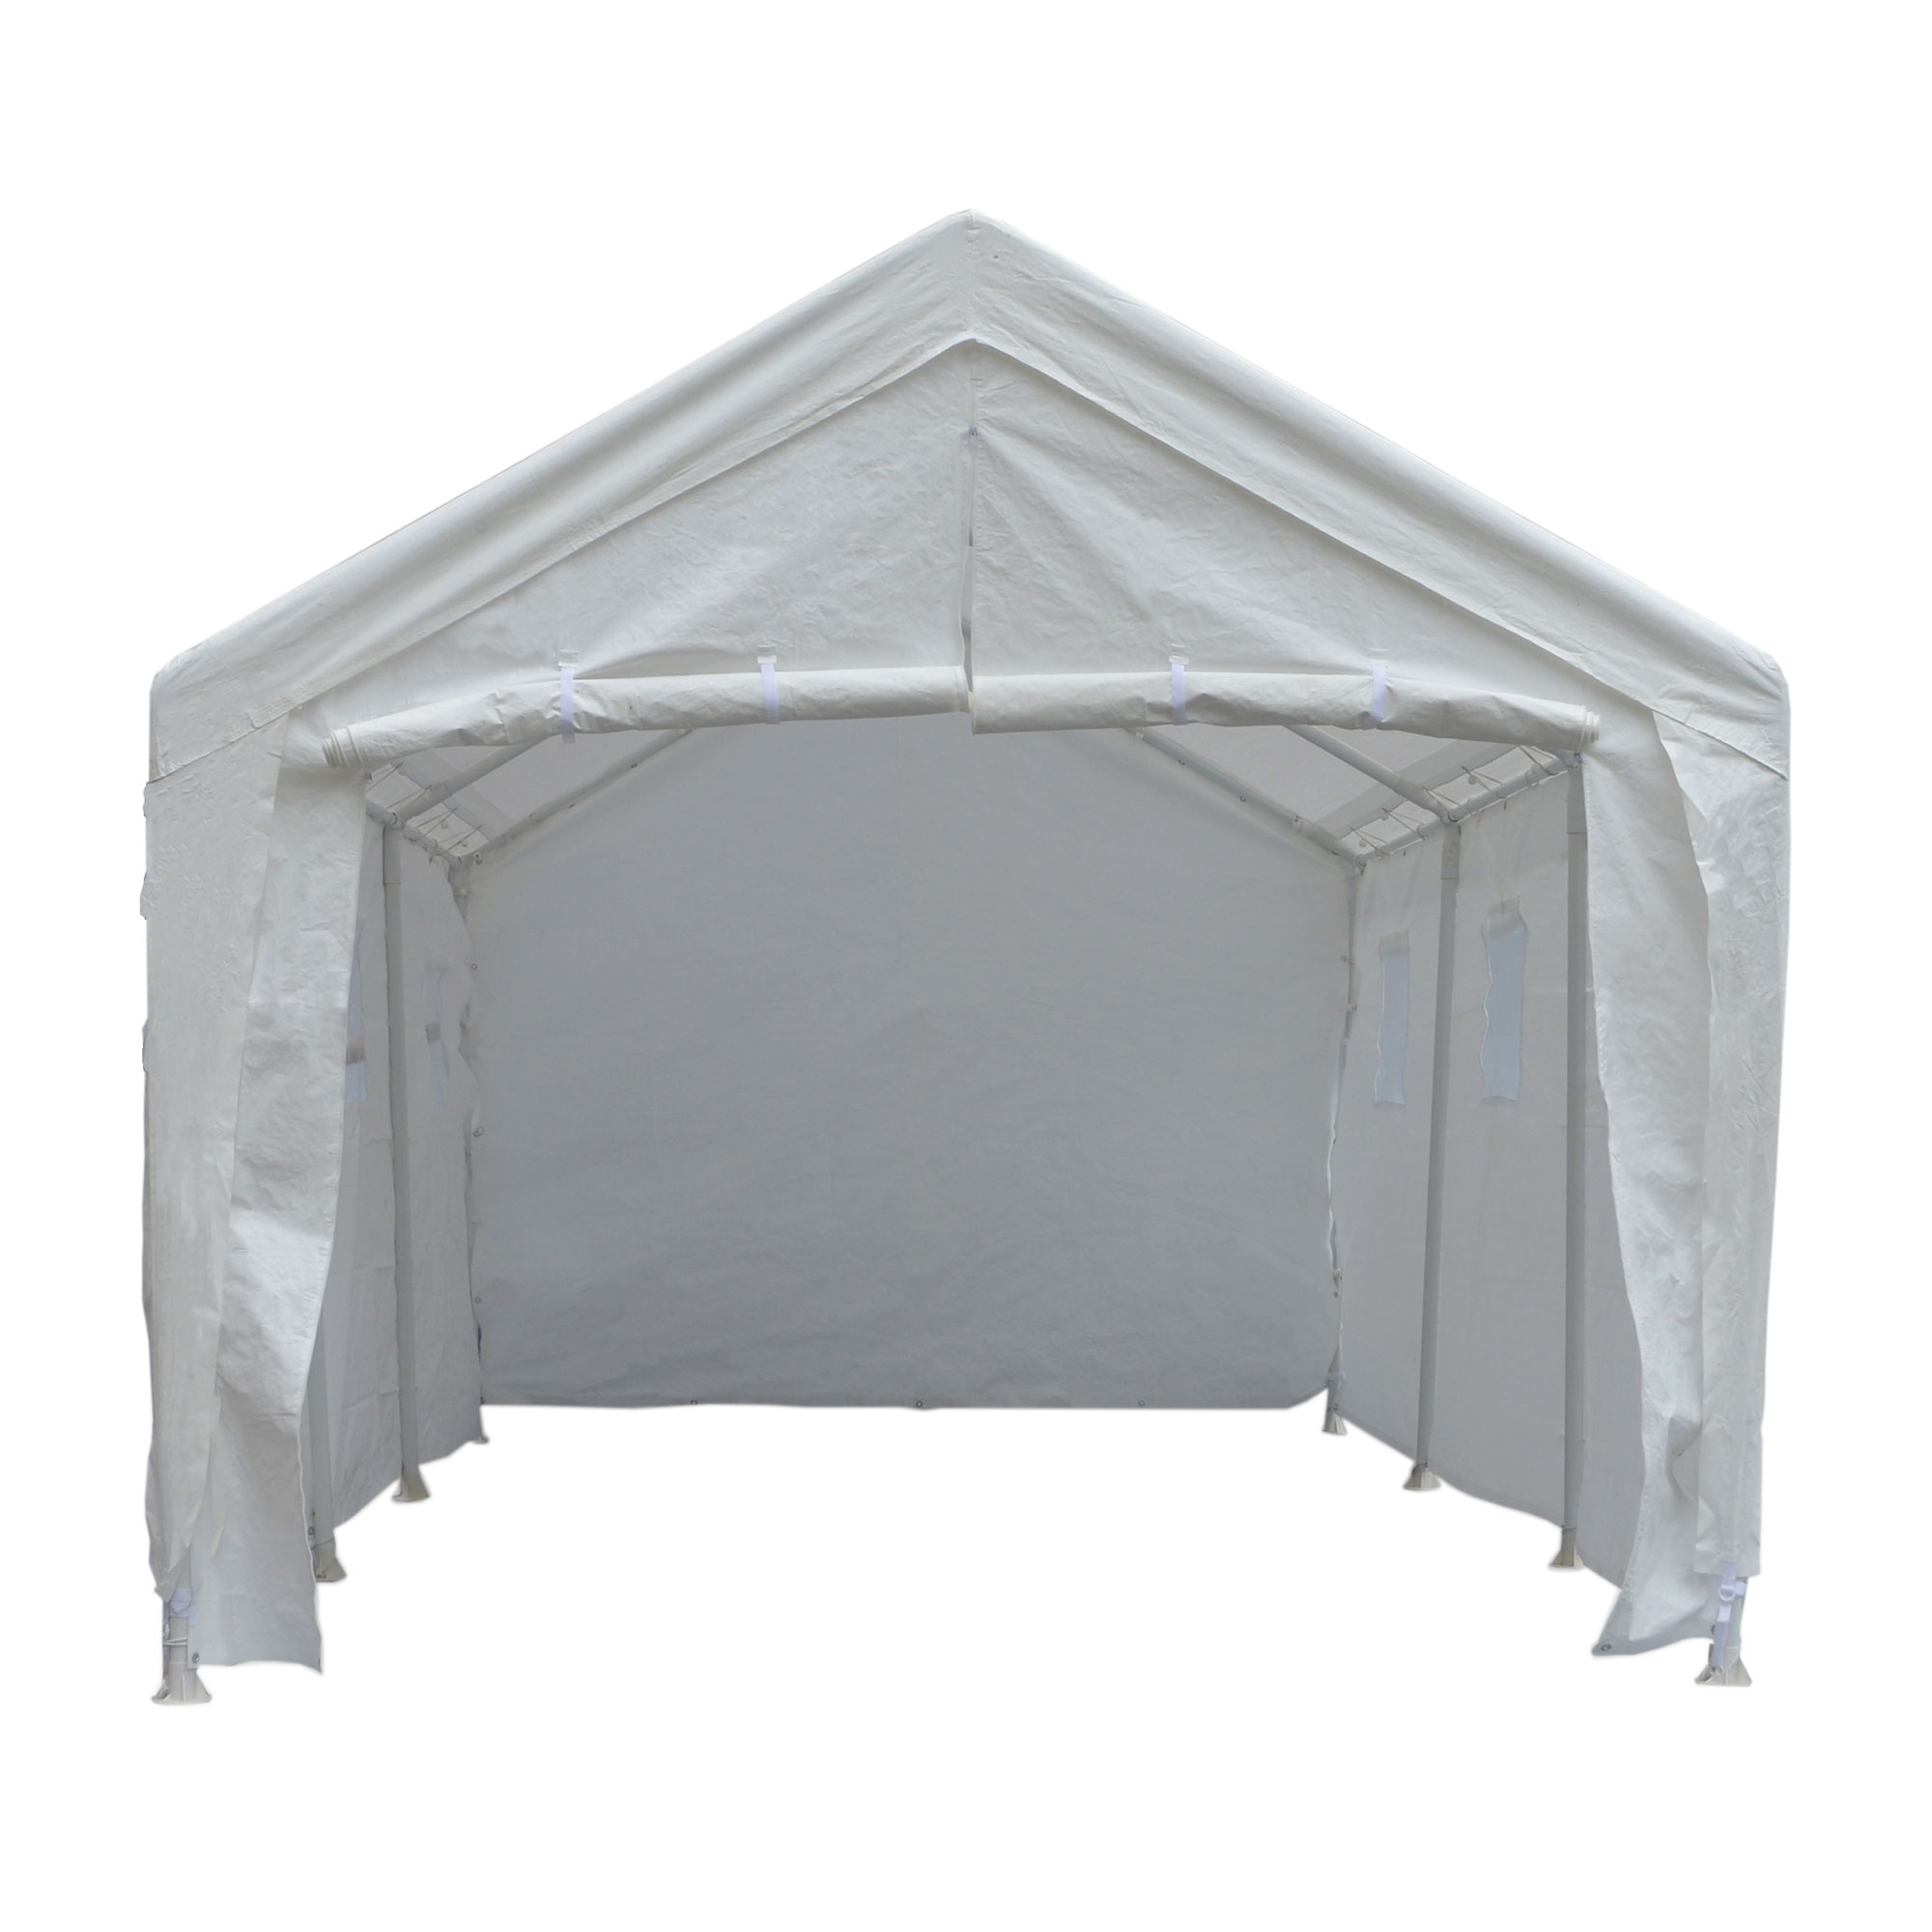 True Shelter Hercules 10 x 20 Foot 8 Leg Universal Carport Shelter, White by TrueShelter